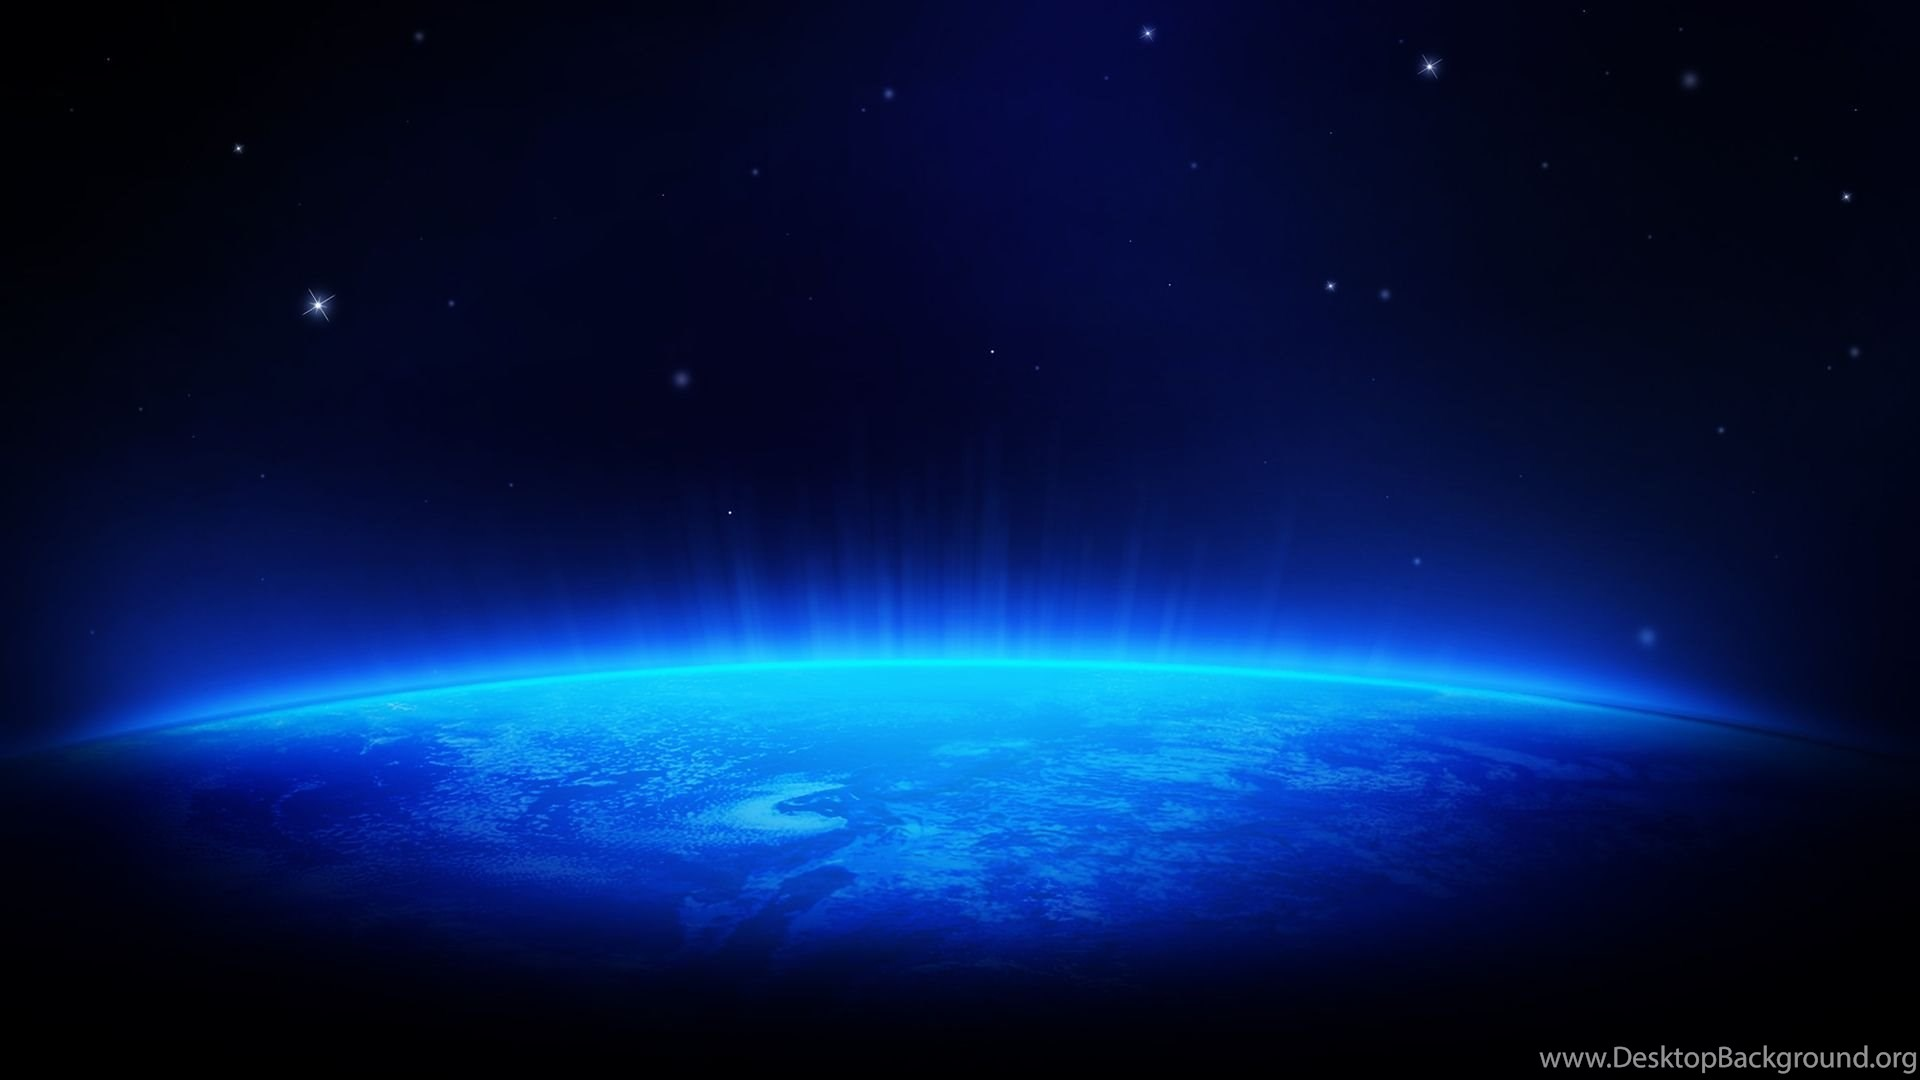 1920x1080 blue wallpaper: Blue Space HD Wallpapers @ 1080p HD Wallpapers Desktop